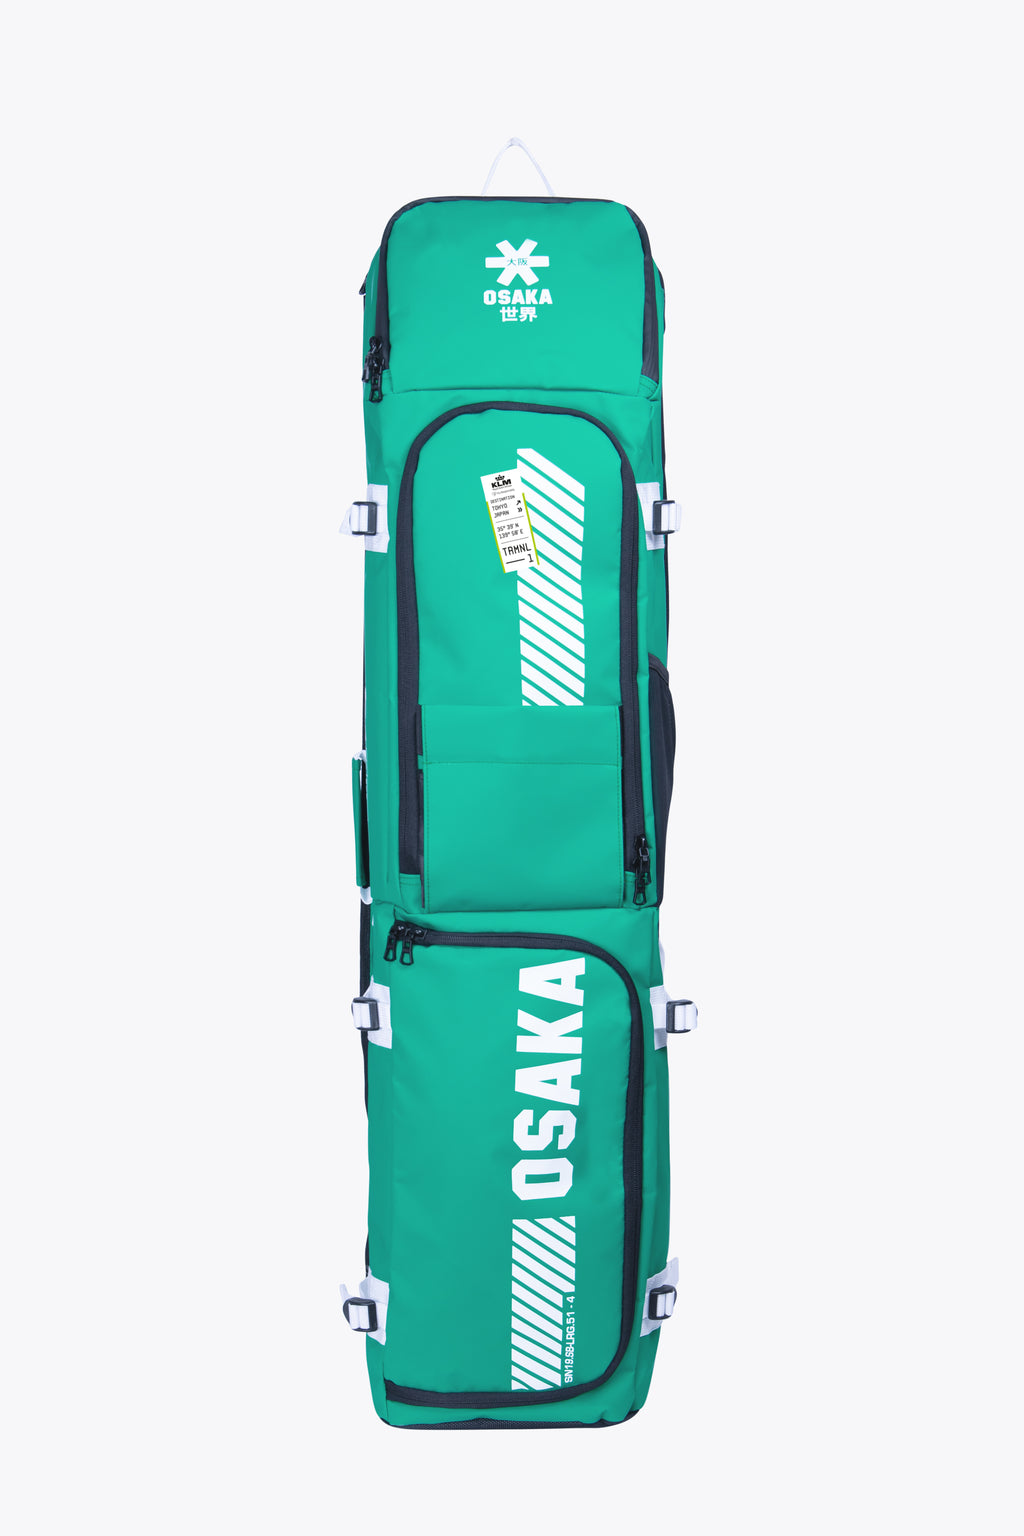 Funda de hockey Osaka Pro Tour Large Jade Green - Promoción KLM